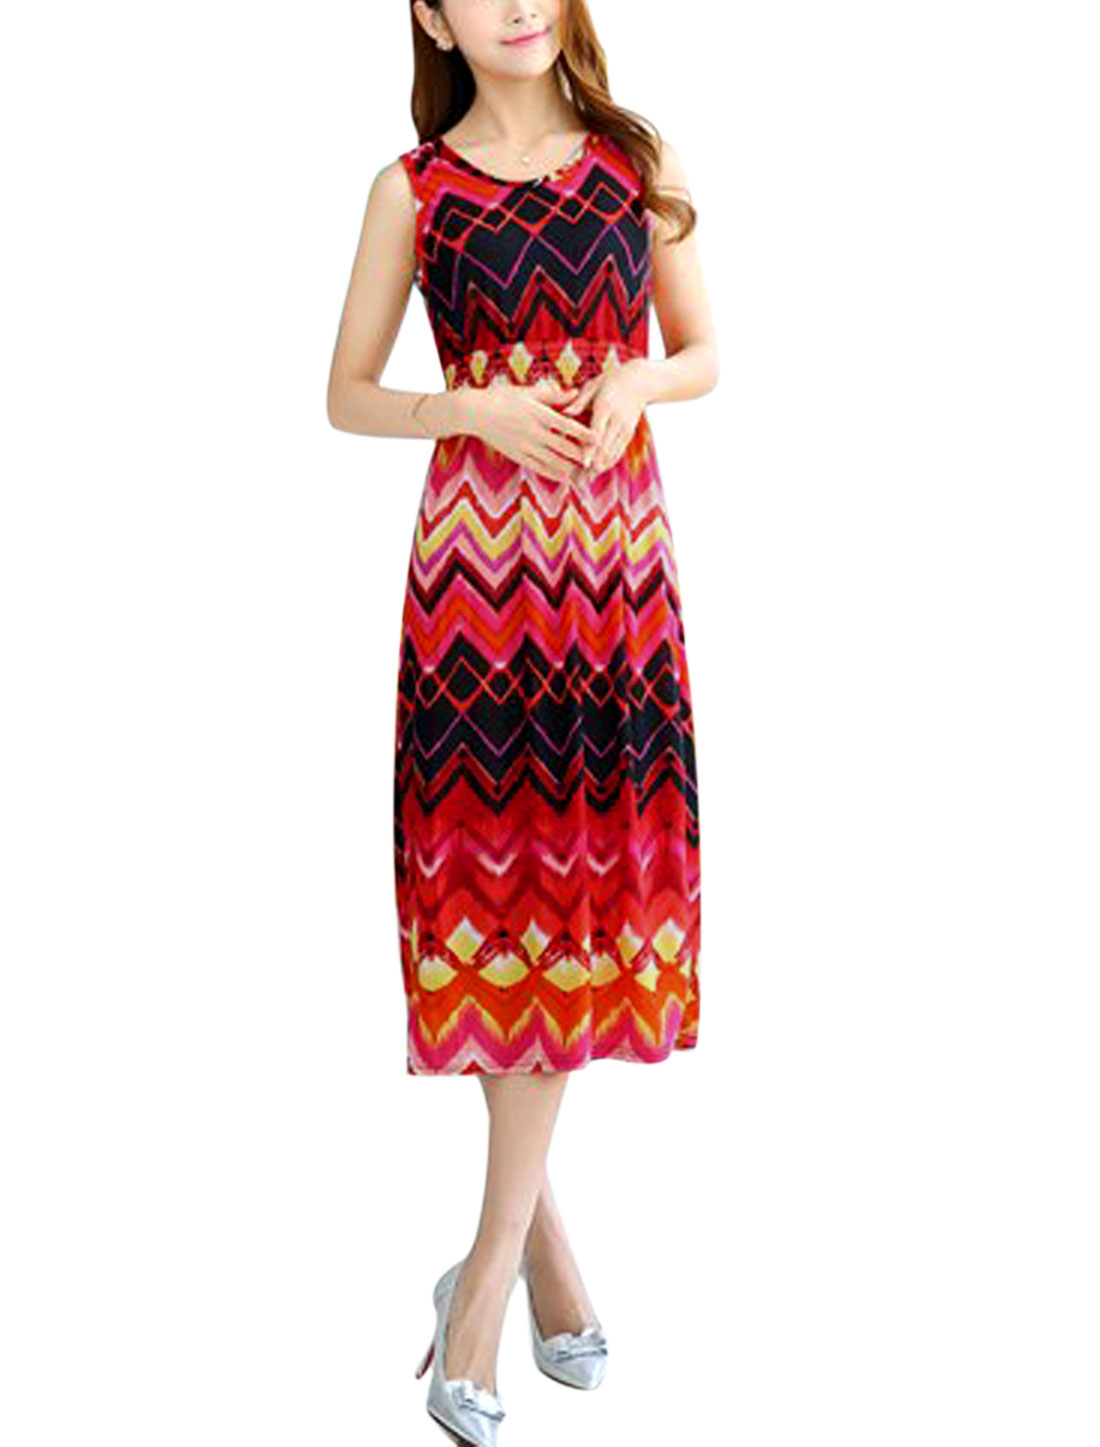 Ladies Round Neck Elastic Waist Zigzag Print Sundress Fuchsia Black XS